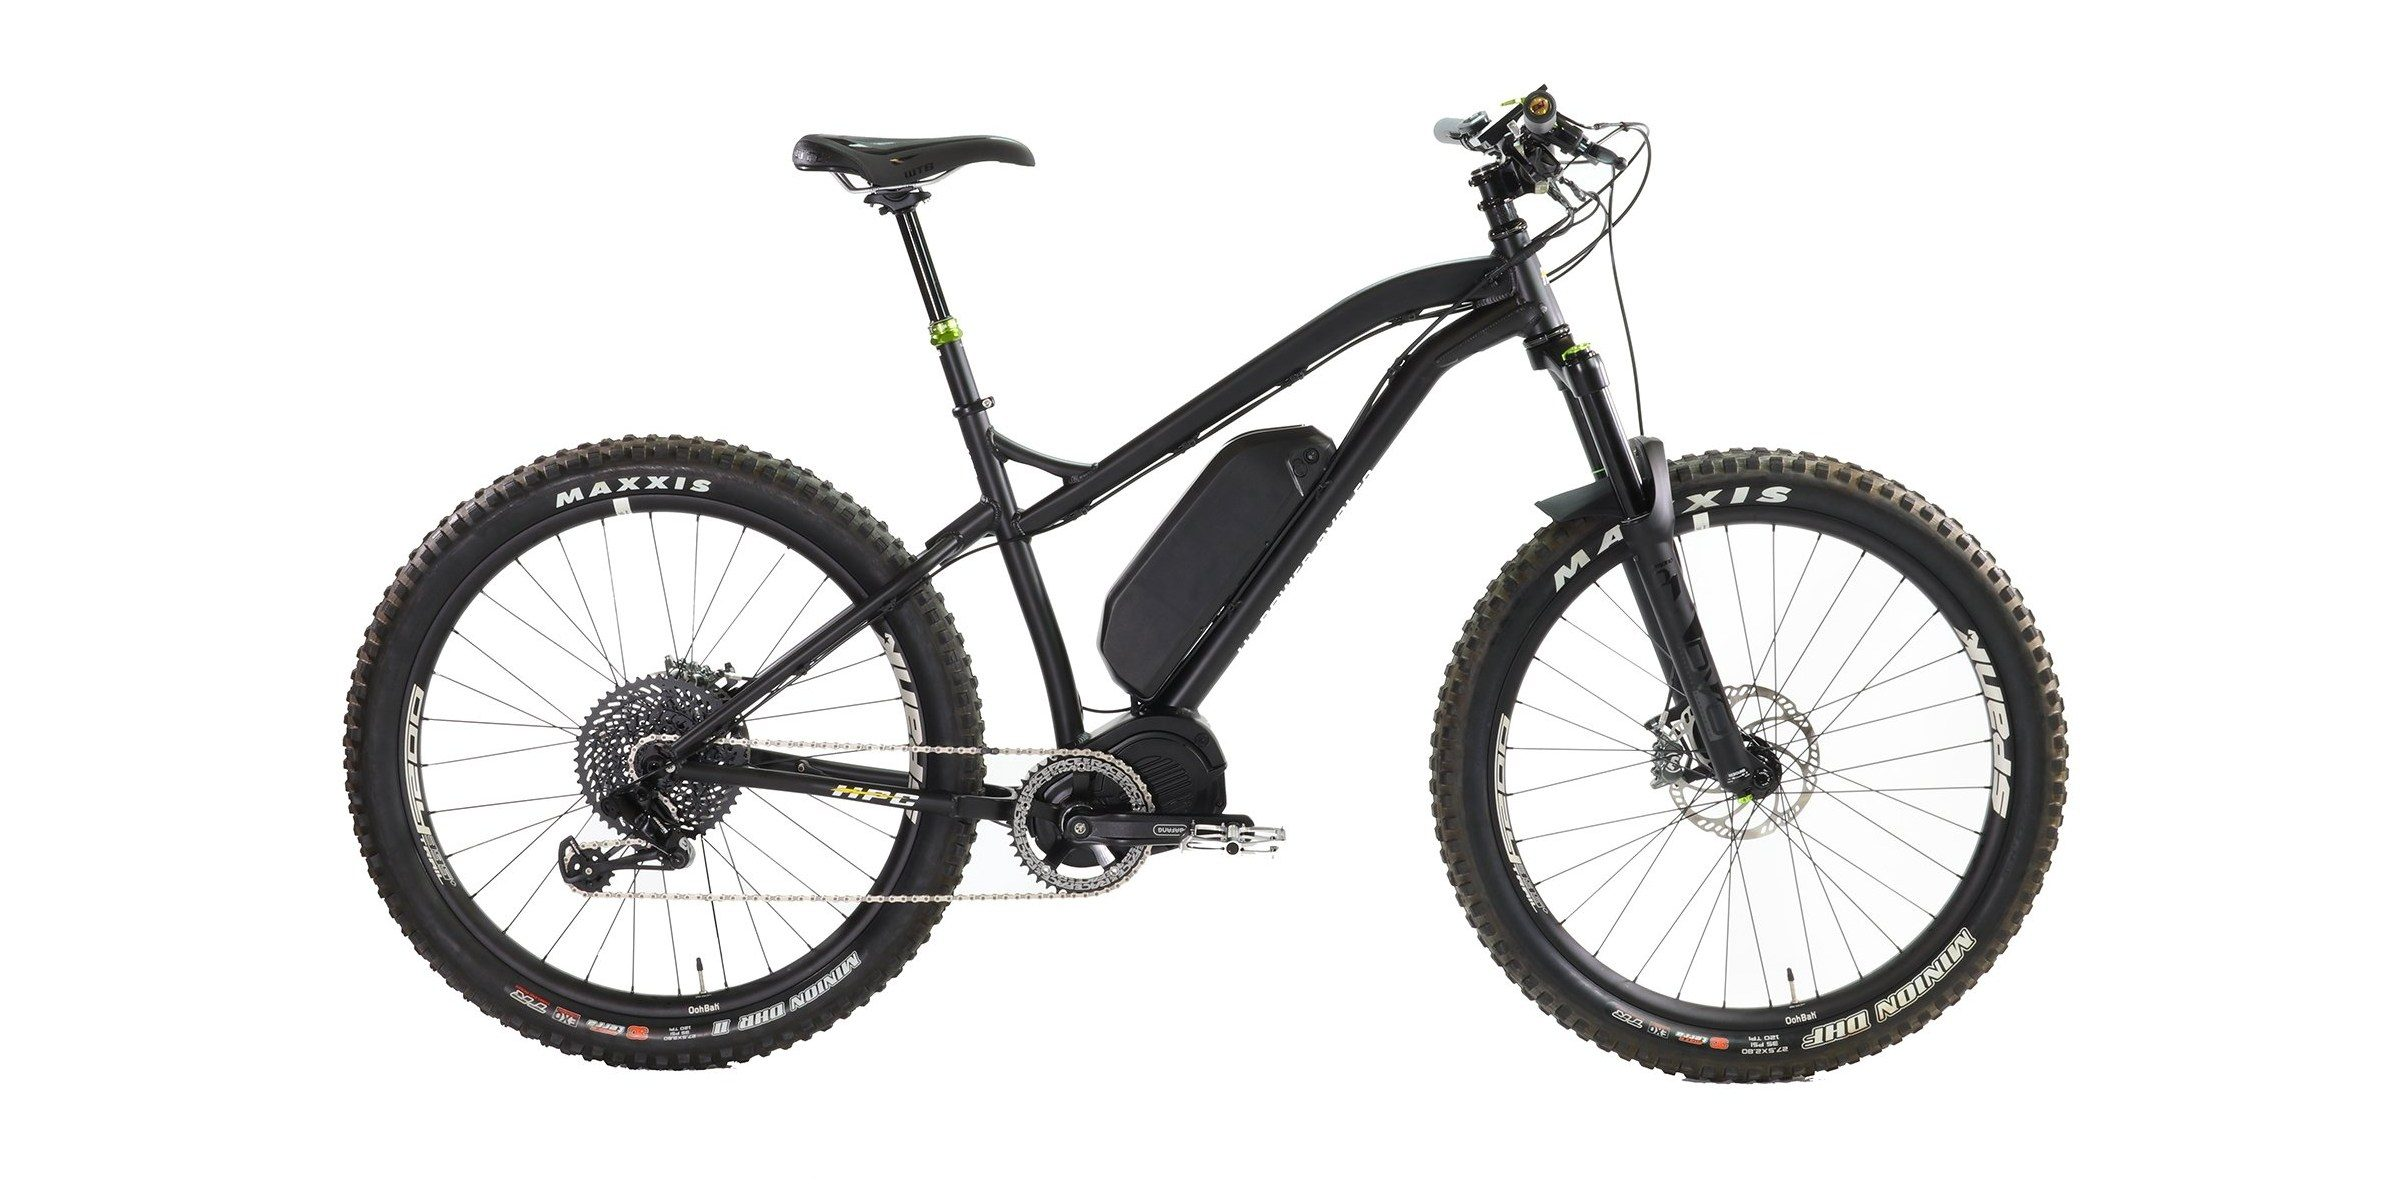 hpc electric bike